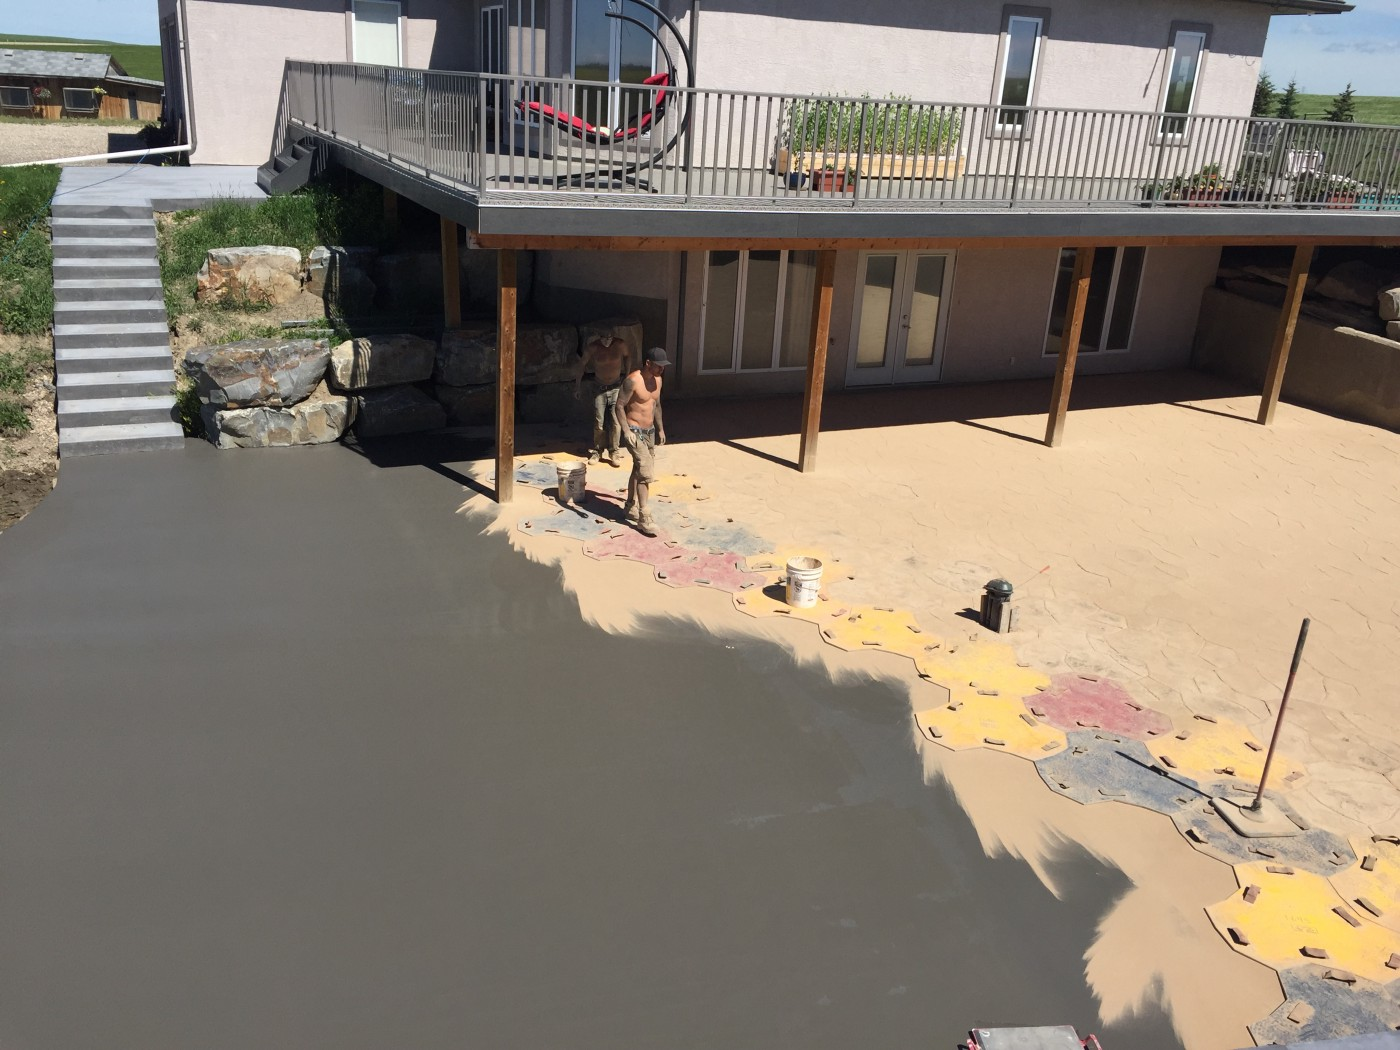 A stamped concrete patio being finished. A worker stands on mats that impression the wet concrete with a pattern.